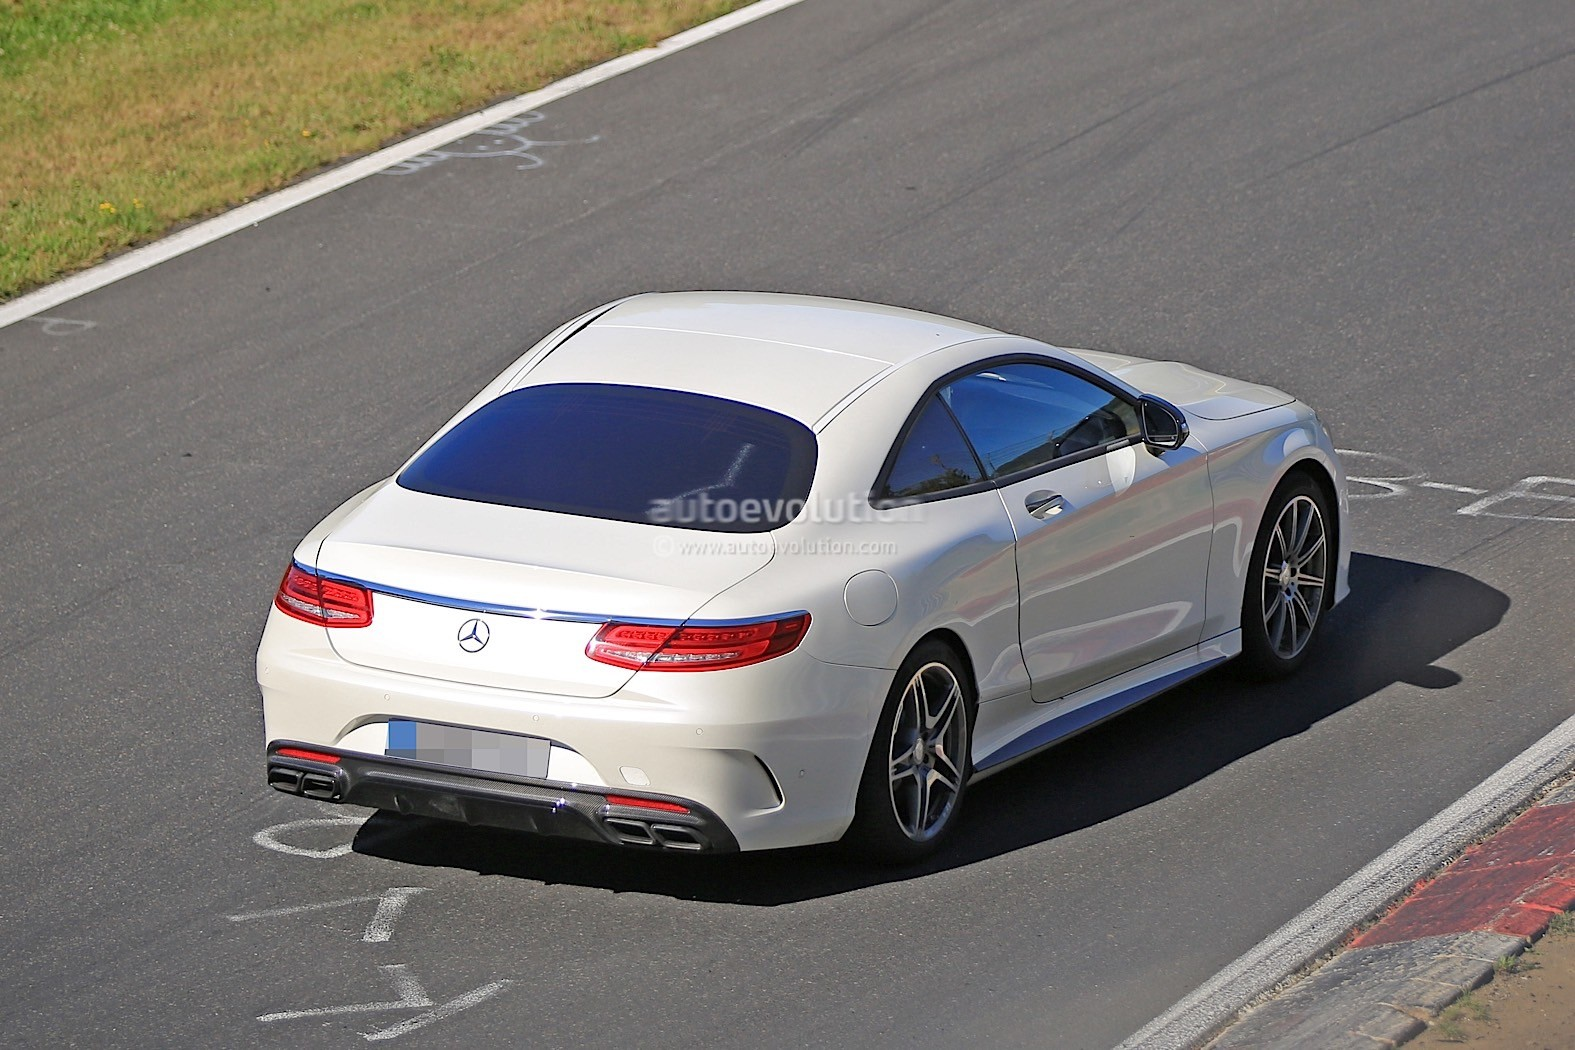 Gle Coupe Facelift 2018 >> 2019 Mercedes-Benz SL Prototype Returns, Looks Like an S-Class Coupe Hot Rod - autoevolution